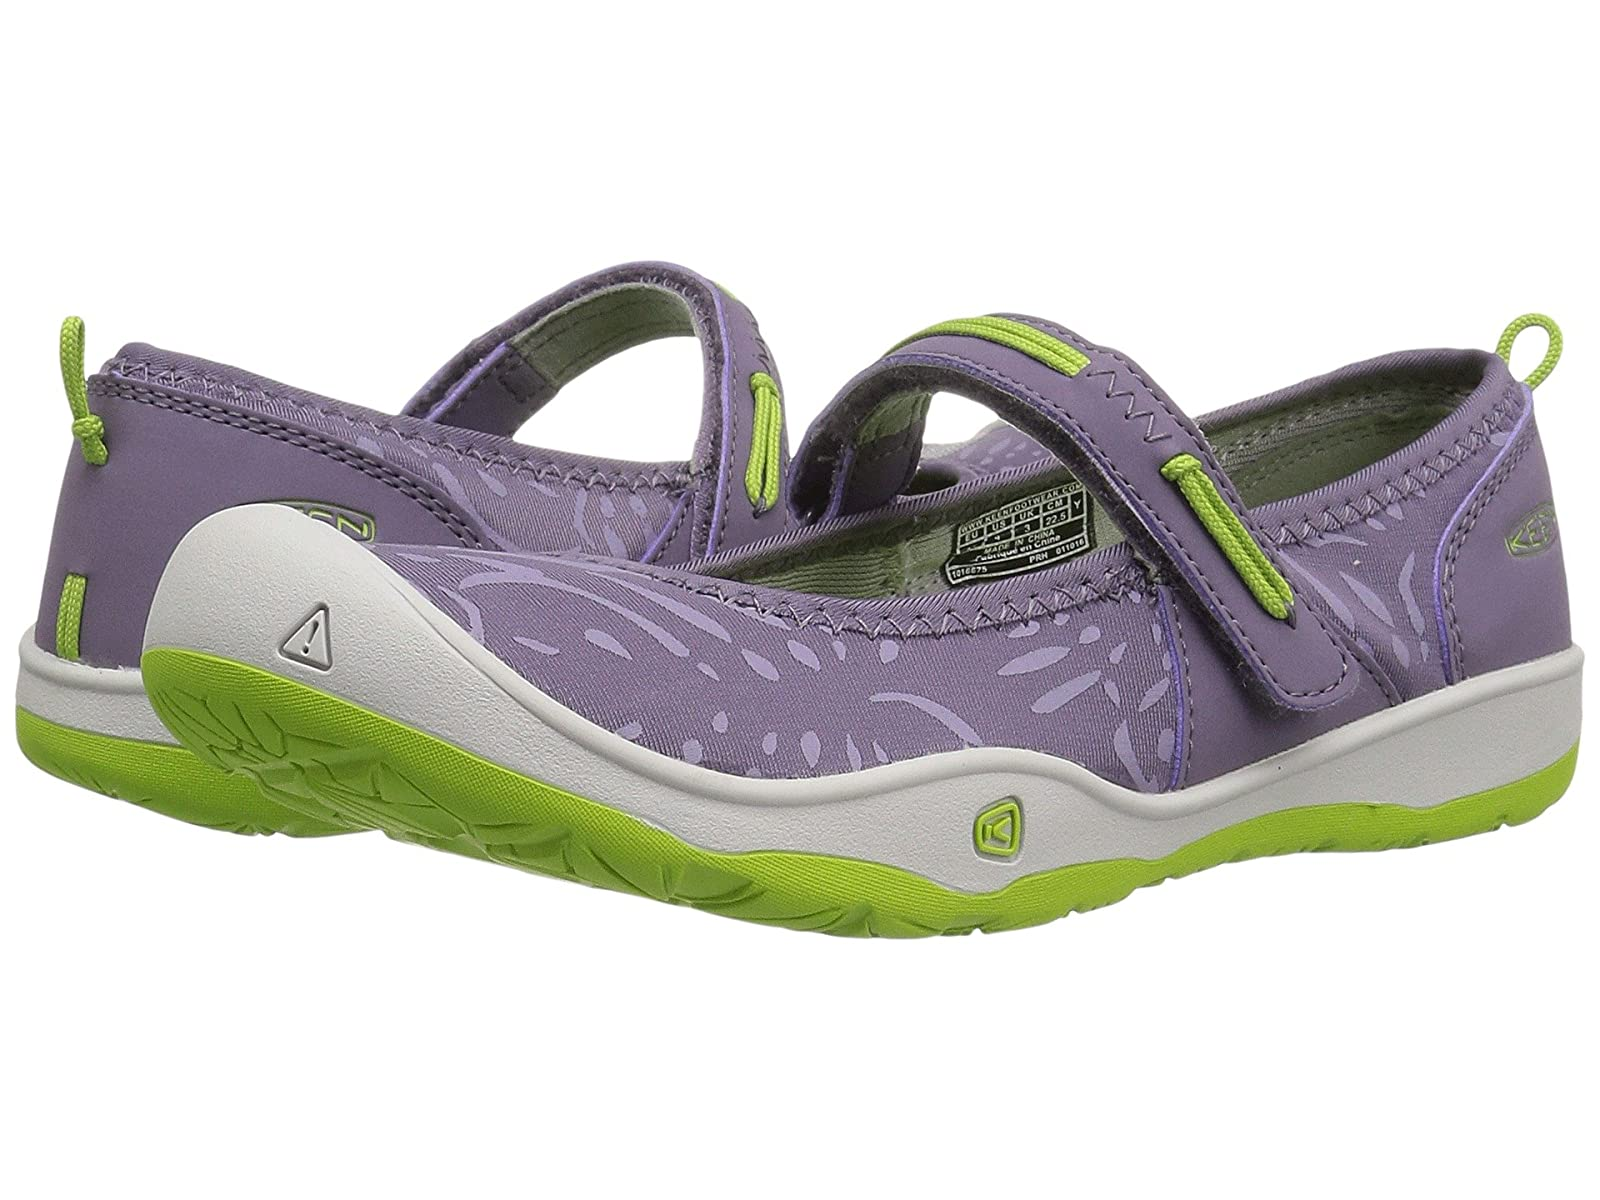 Keen Kids Moxie Mary Jane (Little Kid/Big Kid)Atmospheric grades have affordable shoes